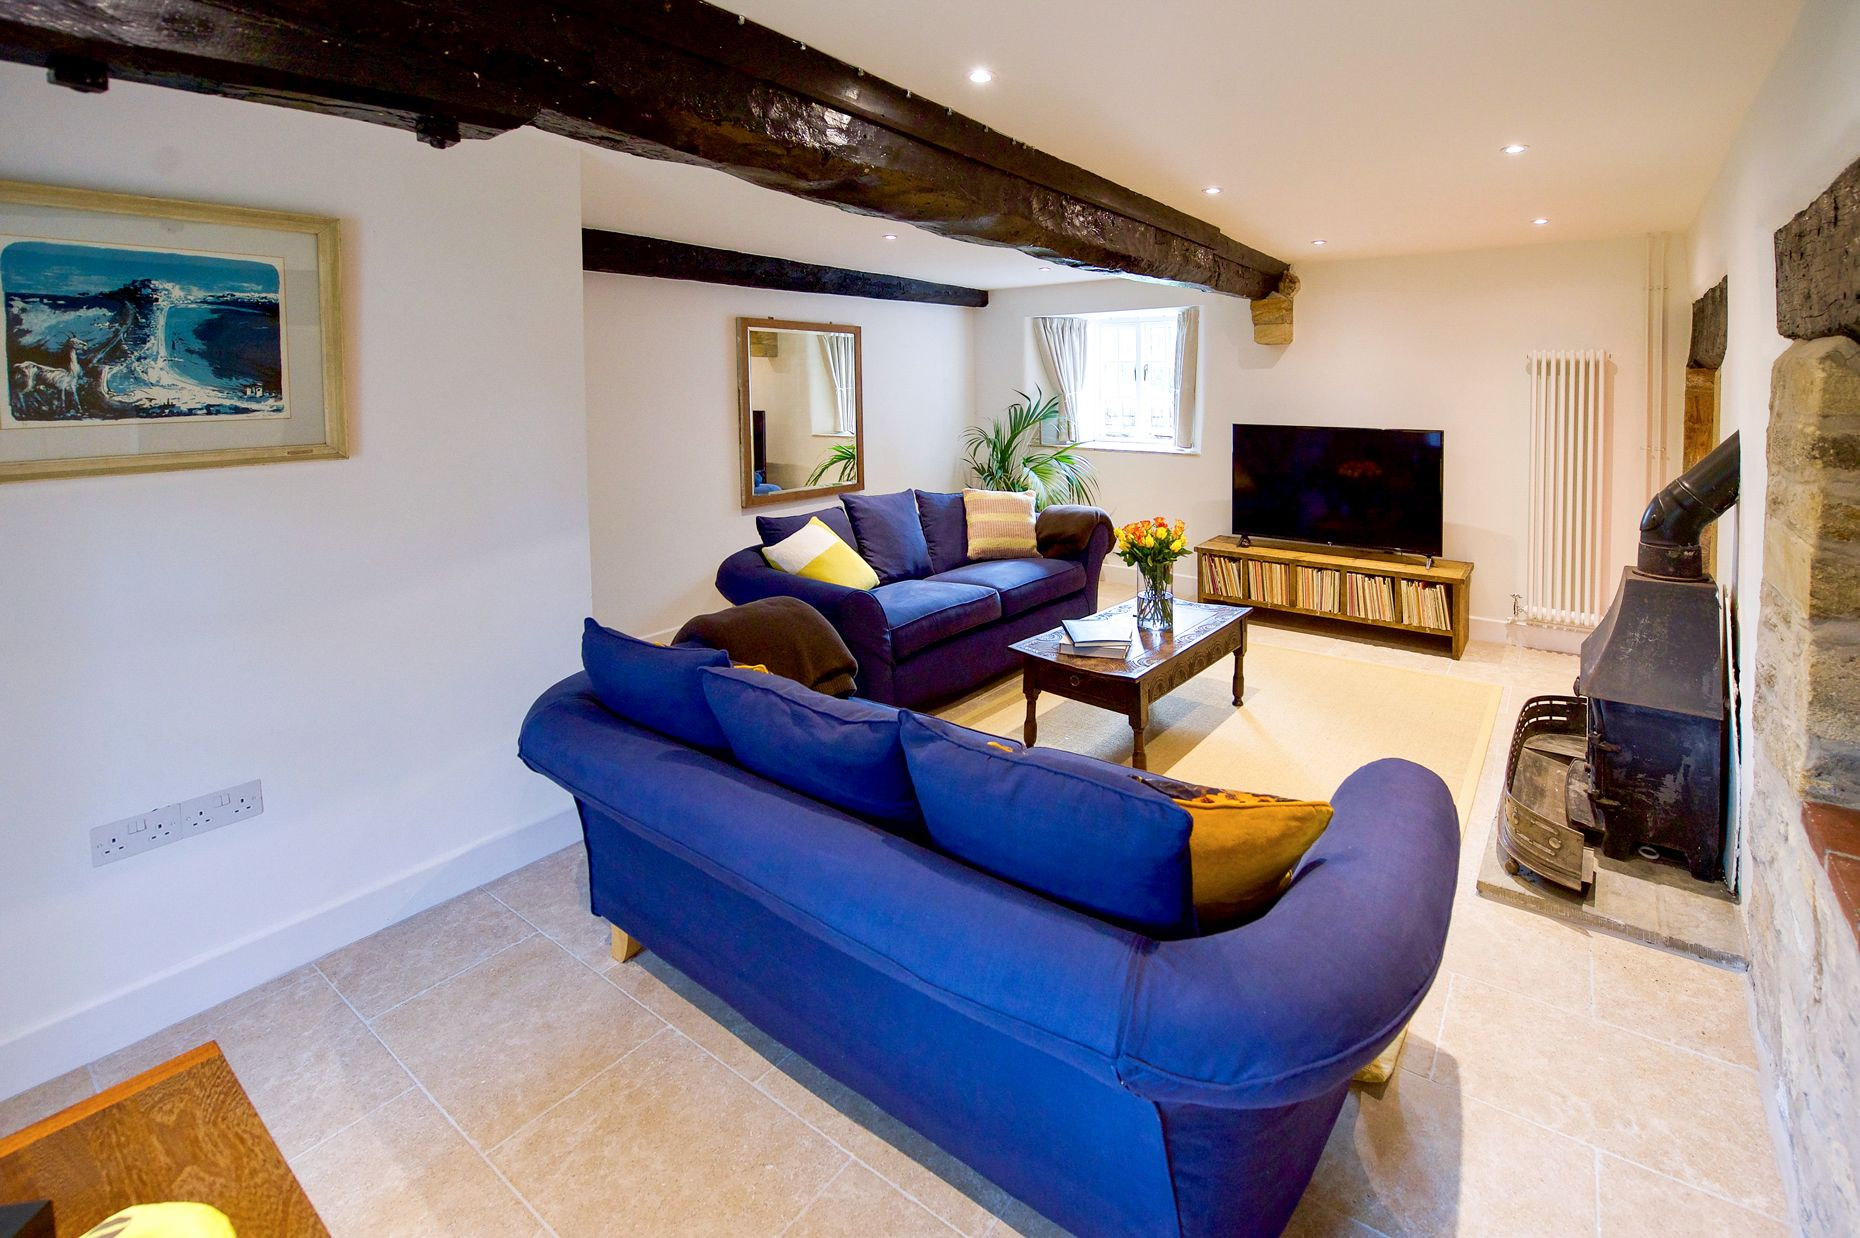 Bake House Cottage is located in Sherborne and surrounding villages